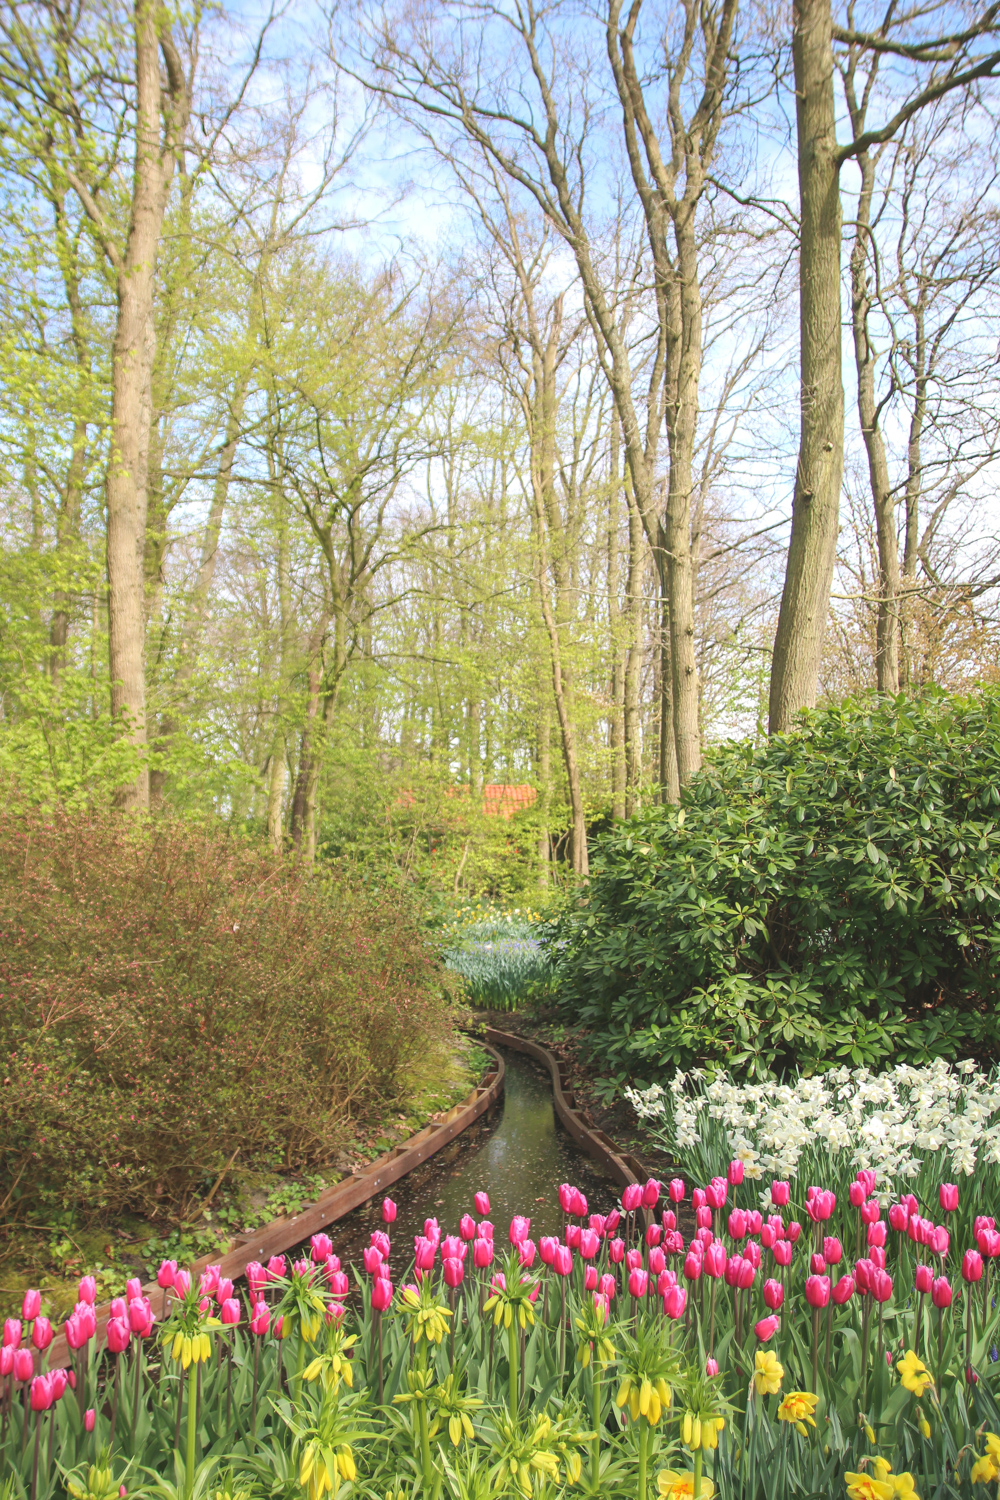 Flower Displays at Keukenhof Gardens, Holland